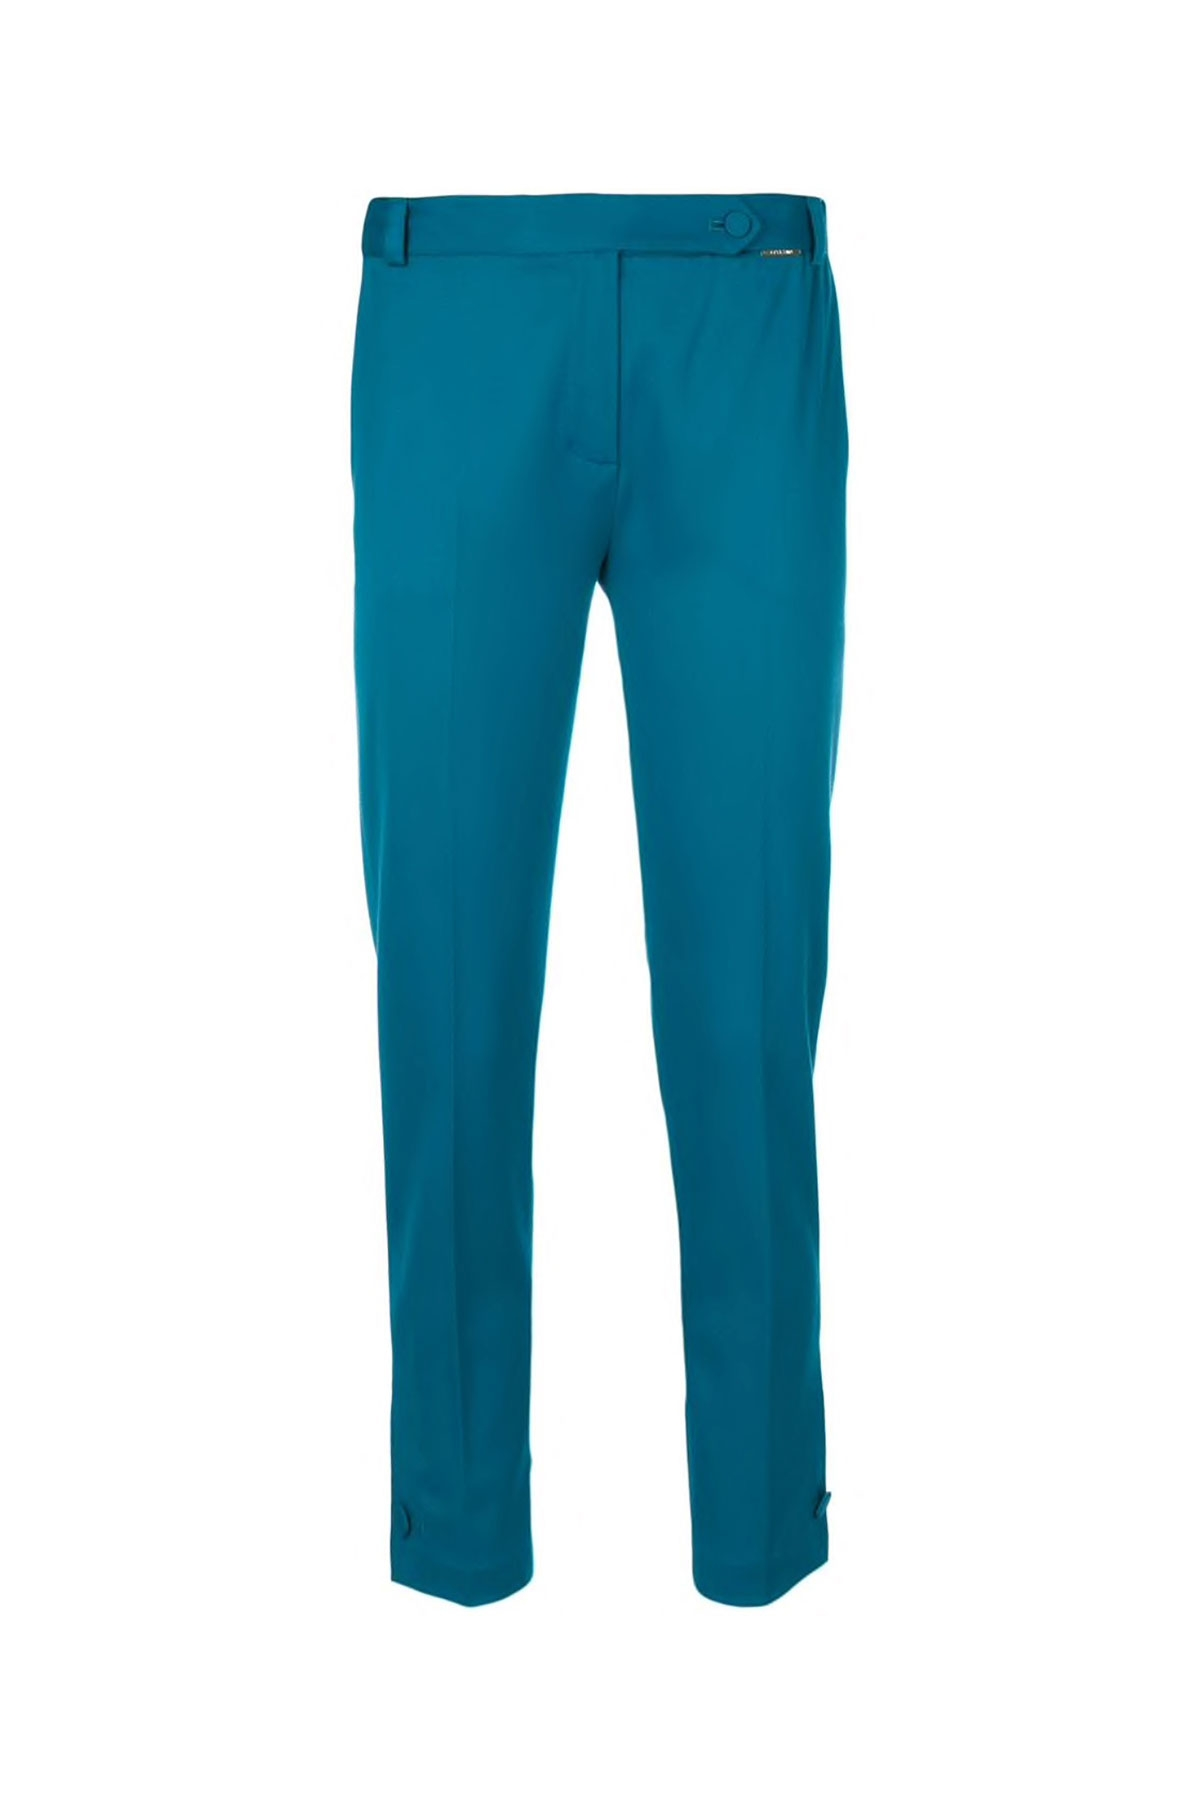 MOROCCAN BLUE TAILORED WOOL CIGARETTE PANTS WITH BUTTON CUFF